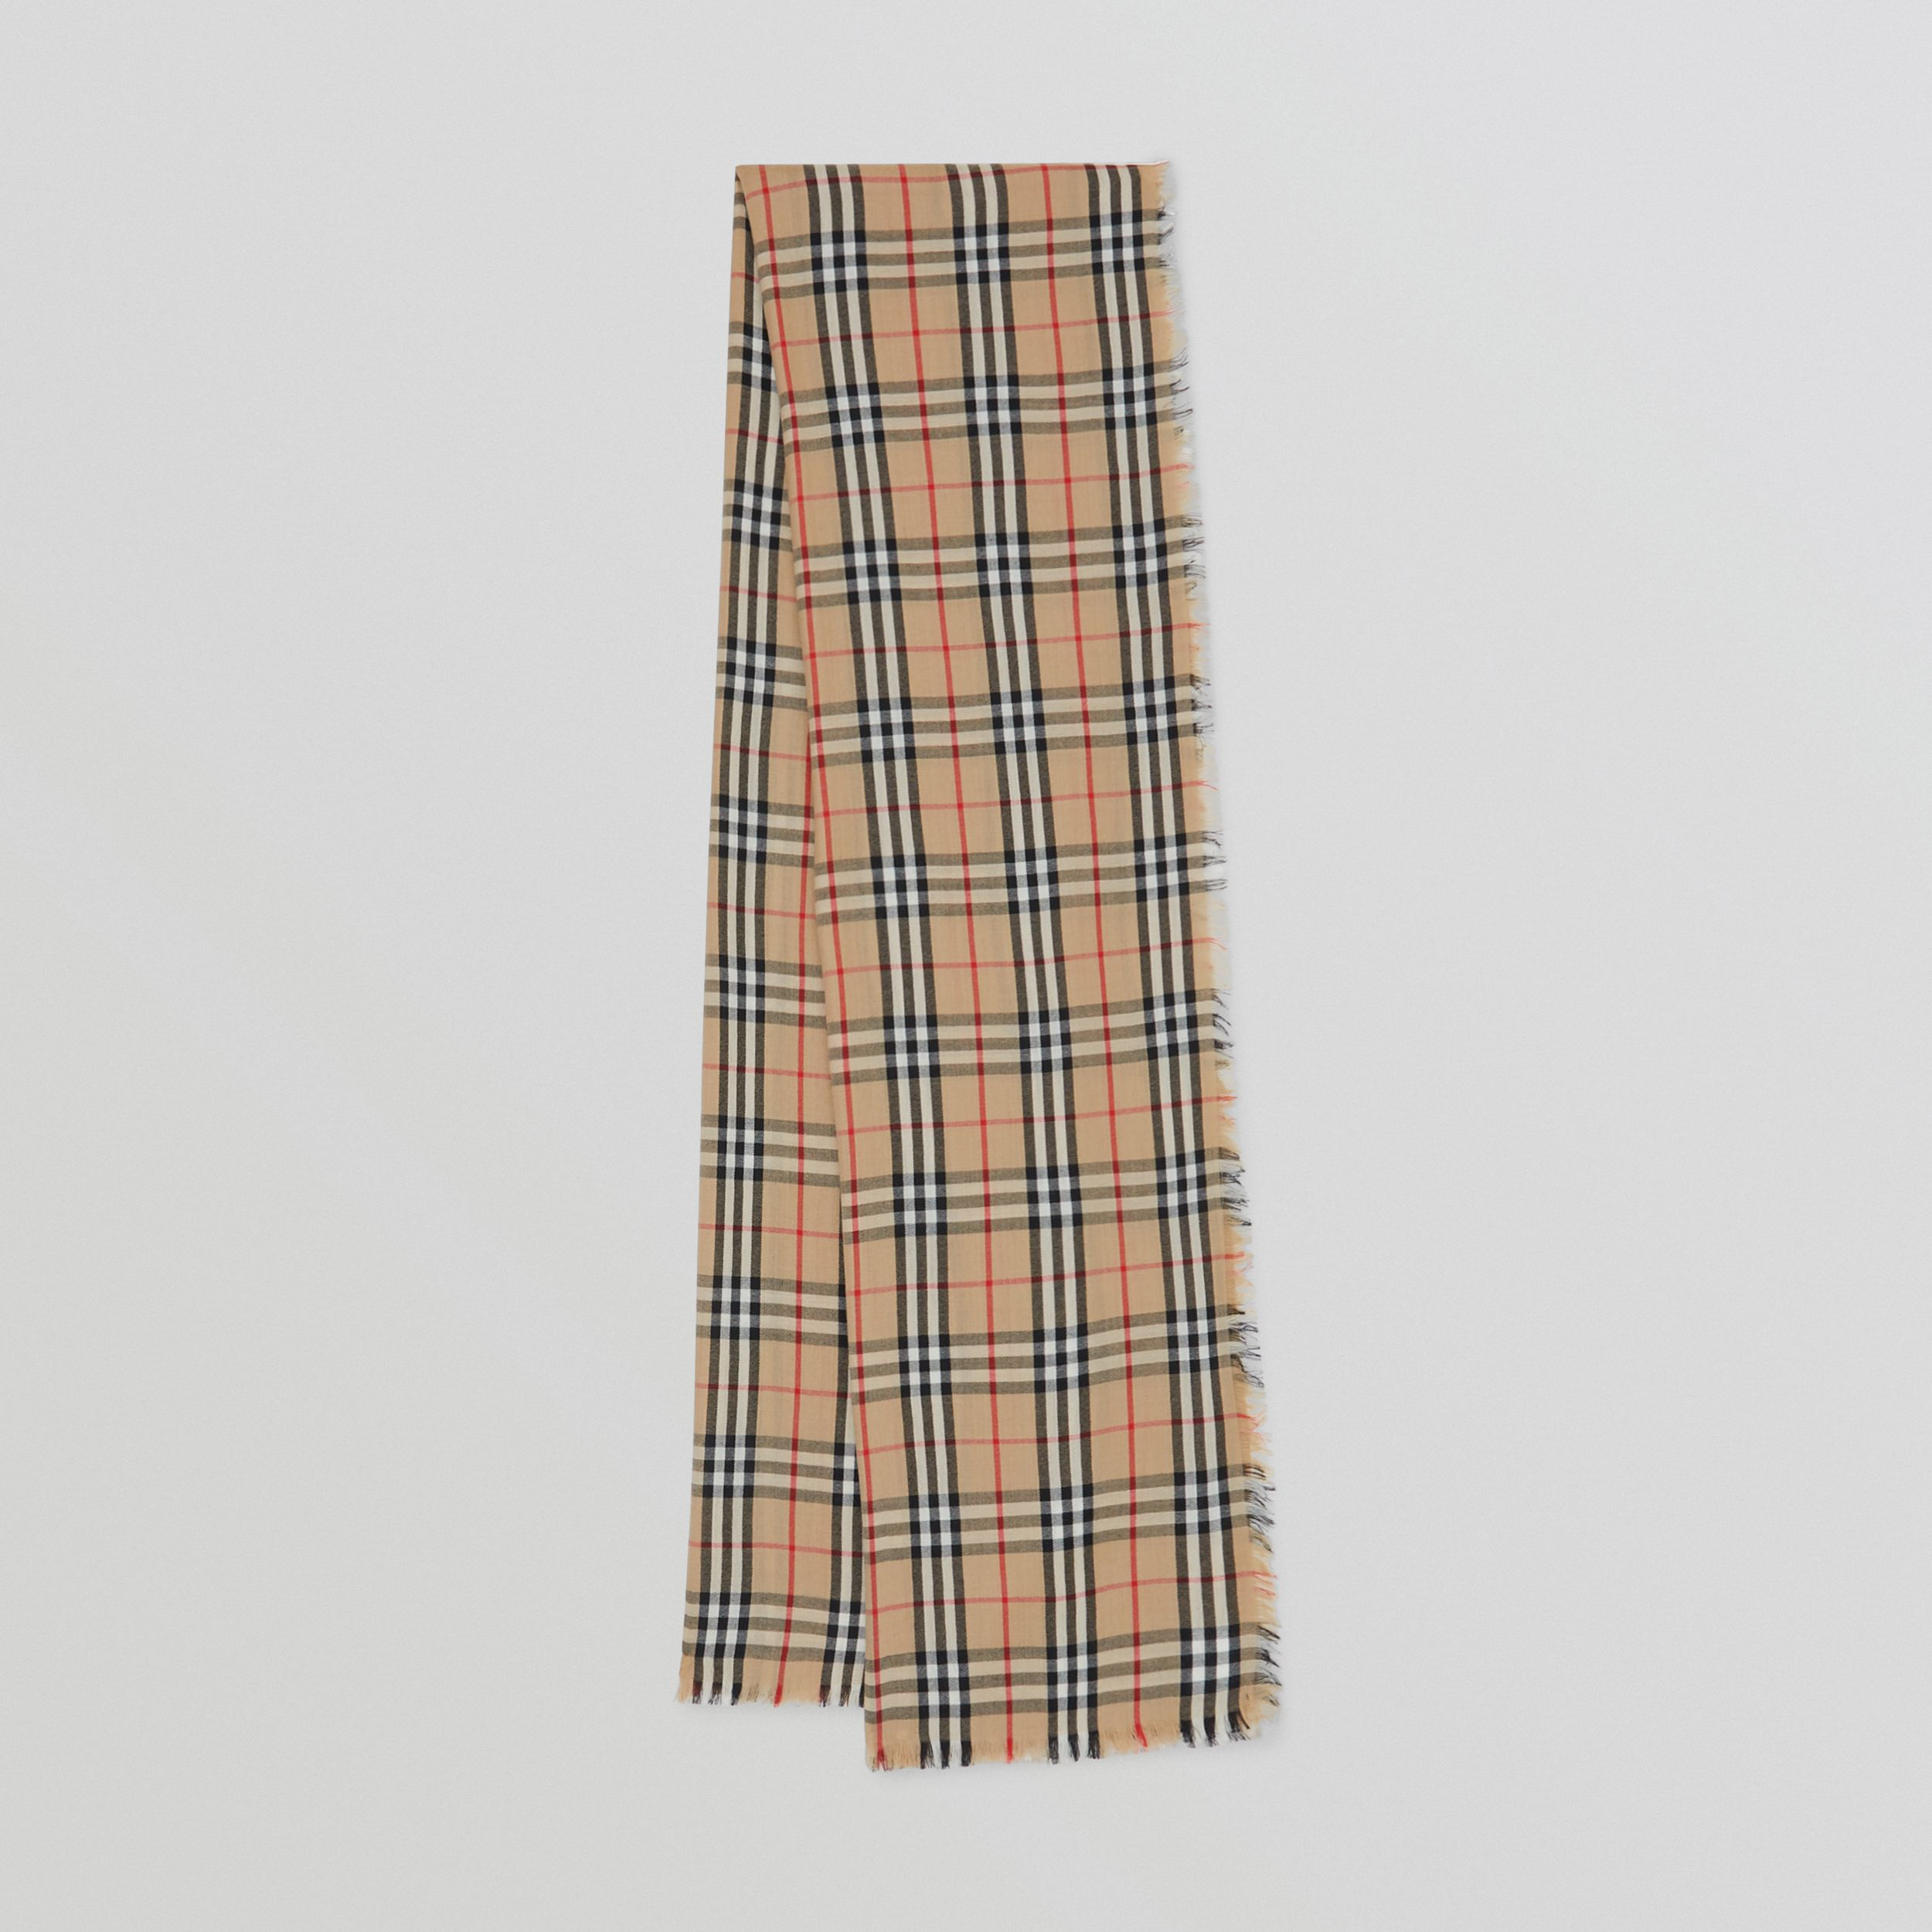 Vintage Check Lightweight Cashmere Scarf in Archive Beige | Burberry - 1